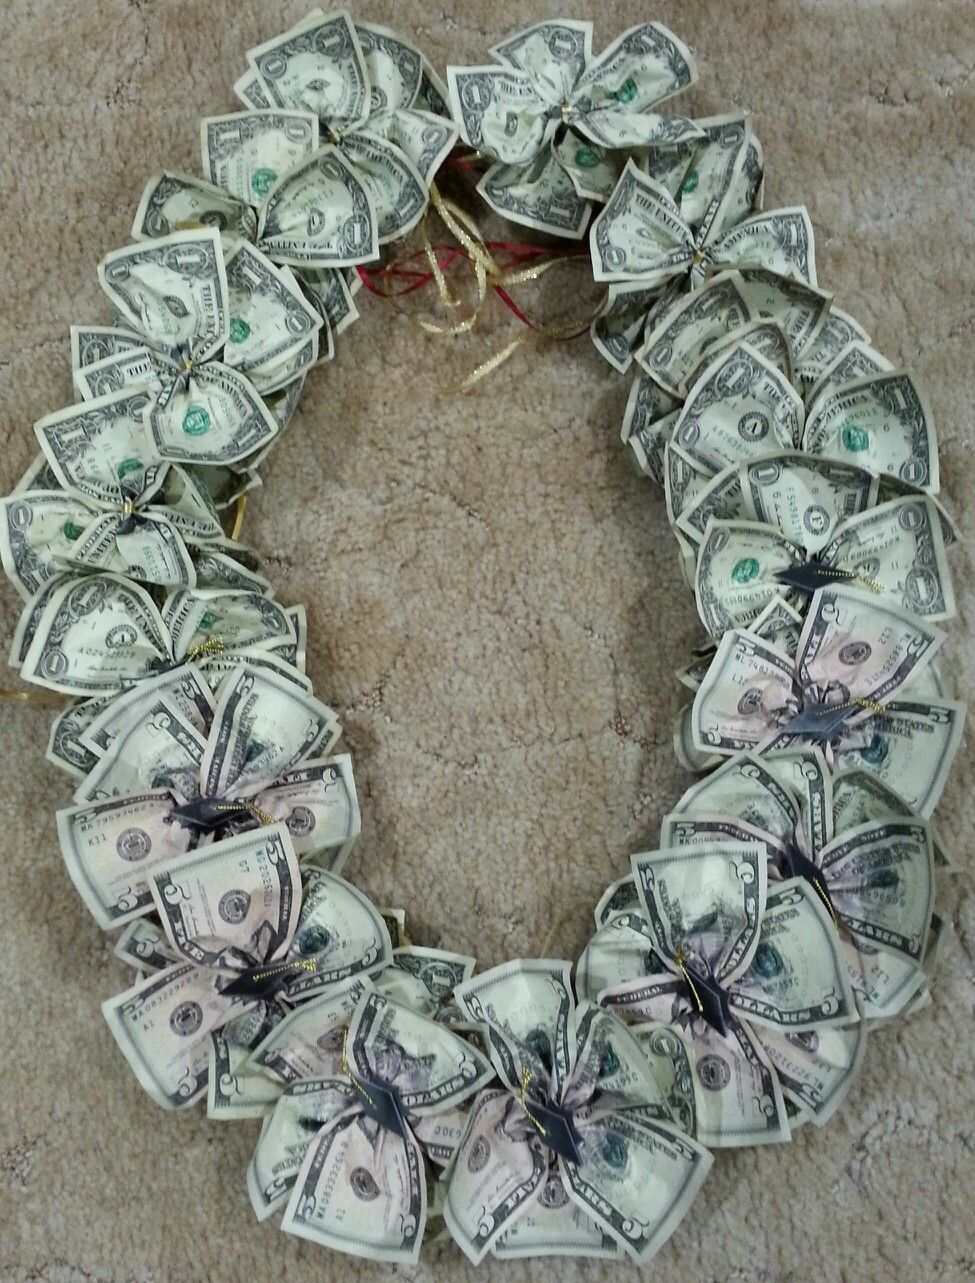 How To Make A Money Necklace : money, necklace, Graduation, Money, Gifts,, Creative